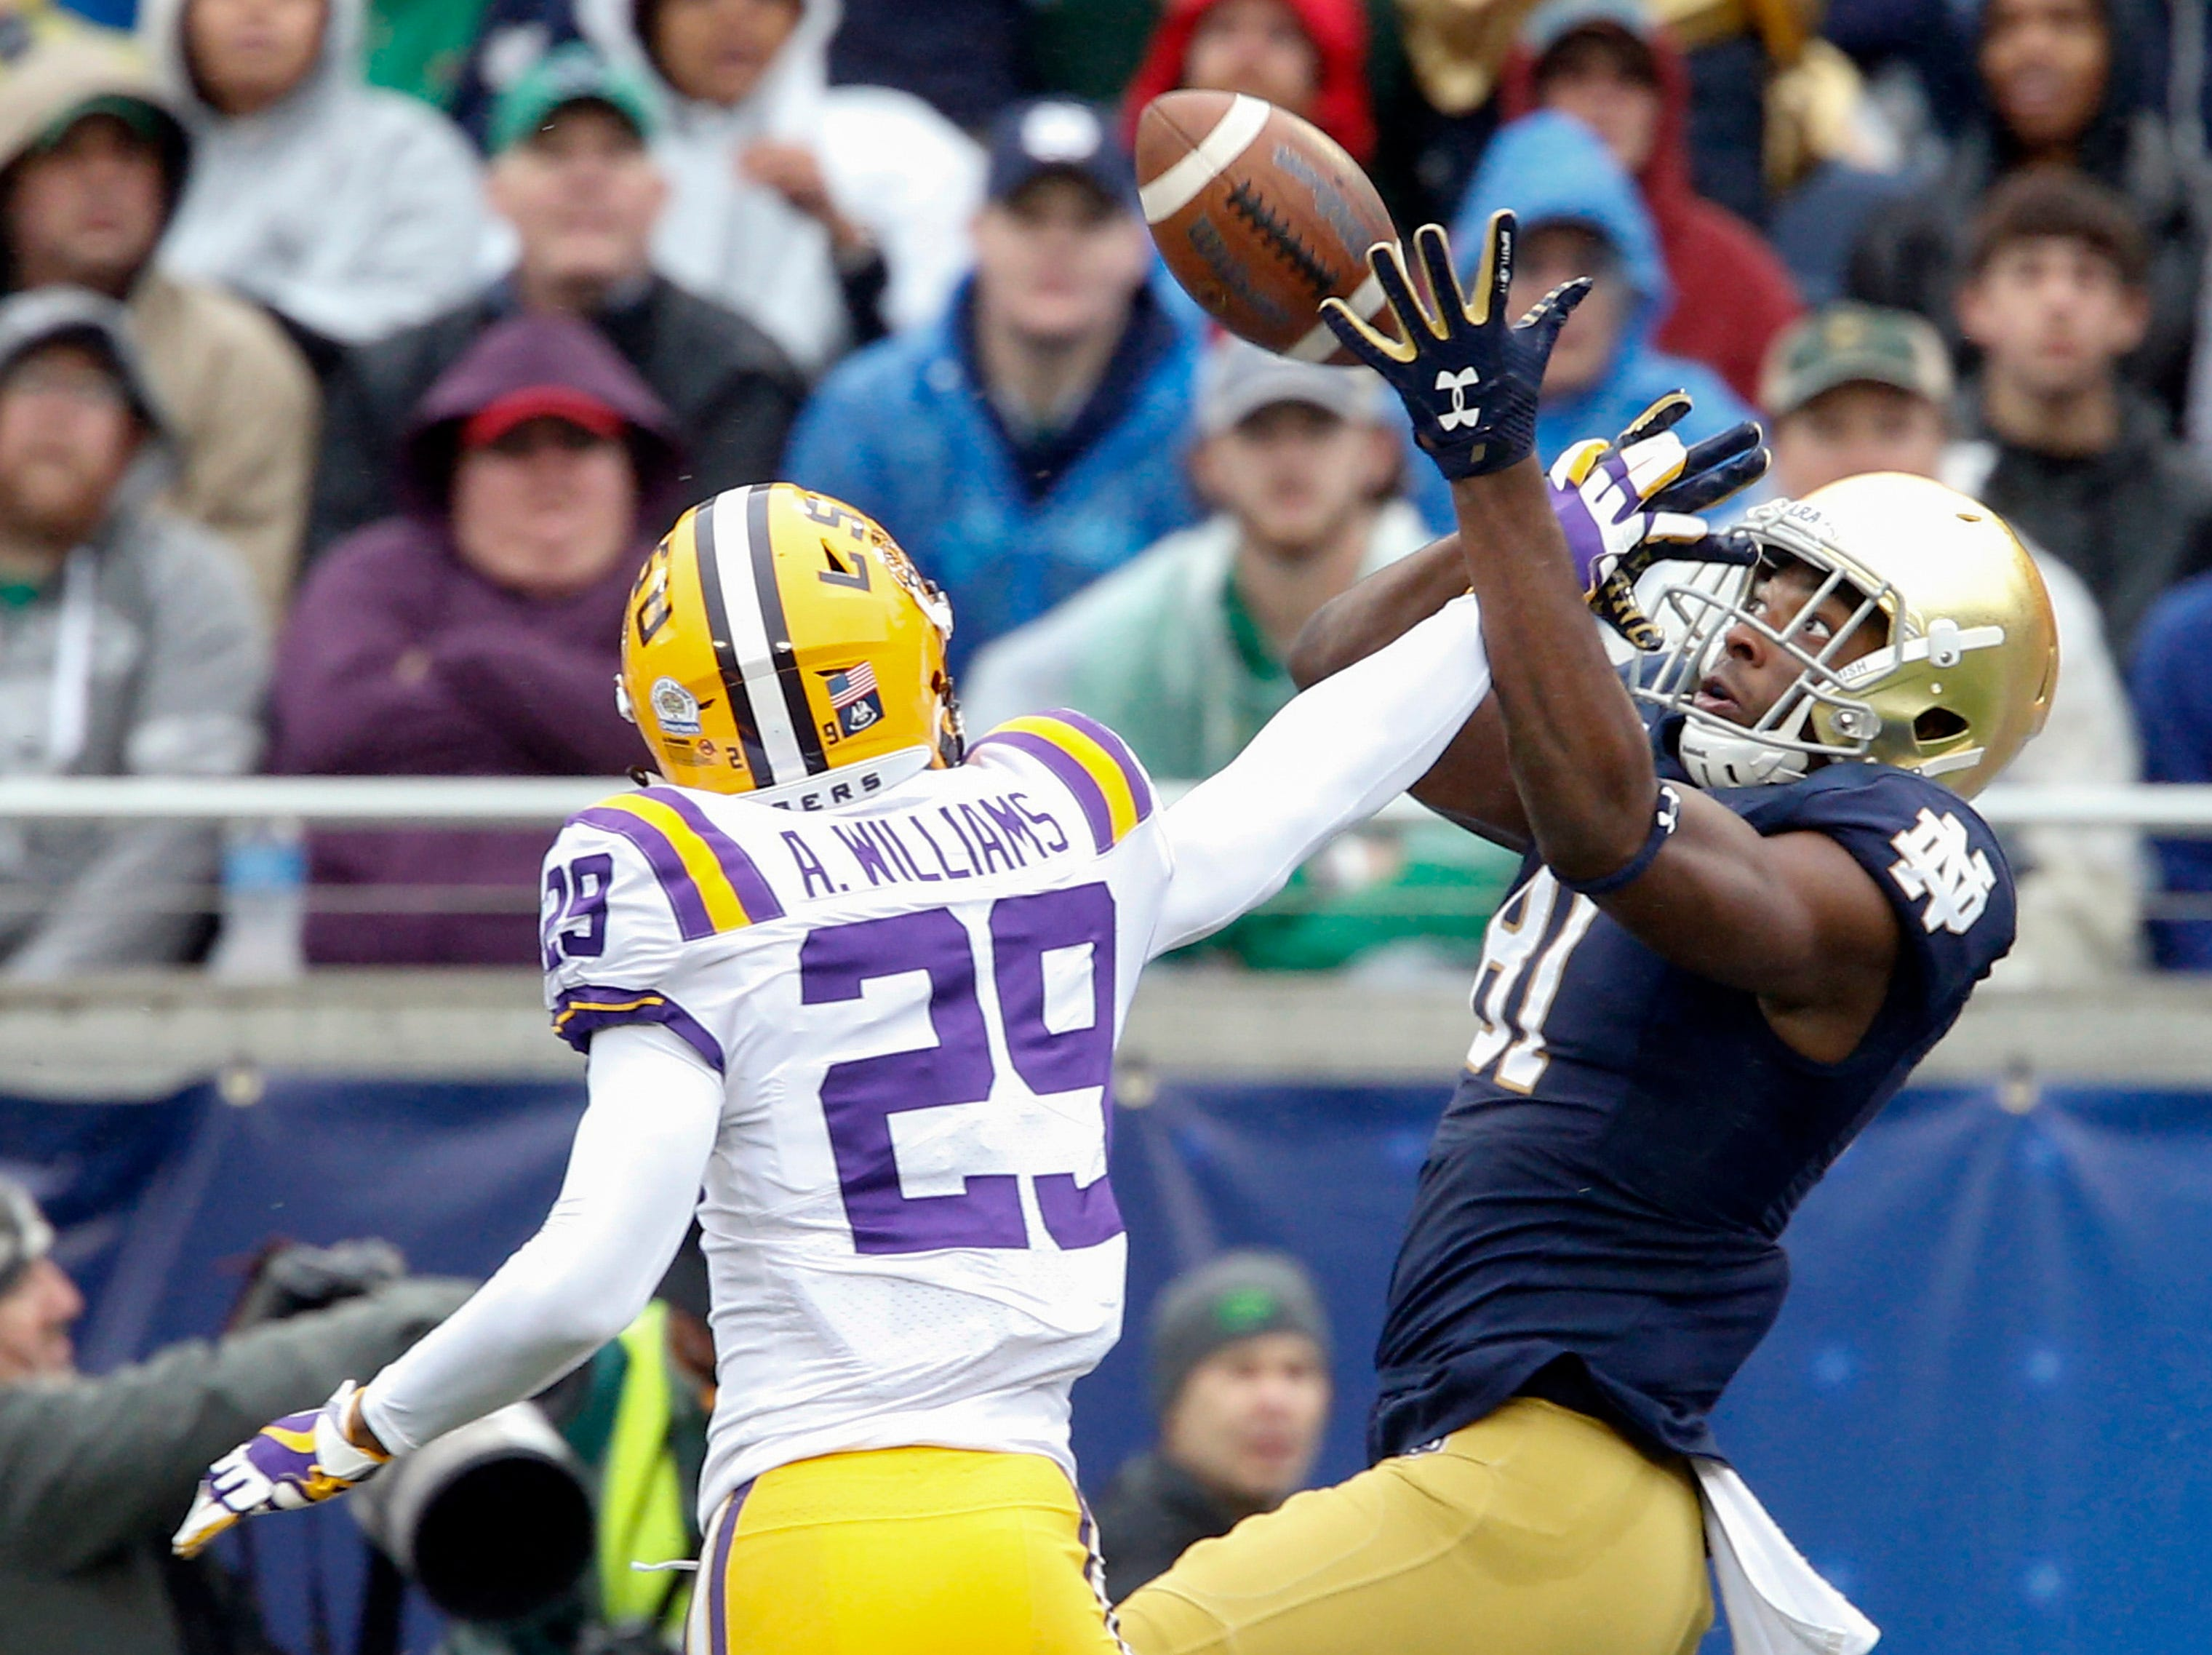 Jan 1, 2018; Orlando, FL, USA; LSU Tigers cornerback Andraez Williams (29) breaks up a pass to Notre Dame Fighting Irish wide receiver Miles Boykin (81) during the first quarter in the 2018 Citrus Bowl at Camping World Stadium. Mandatory Credit: Reinhold Matay-USA TODAY Sports